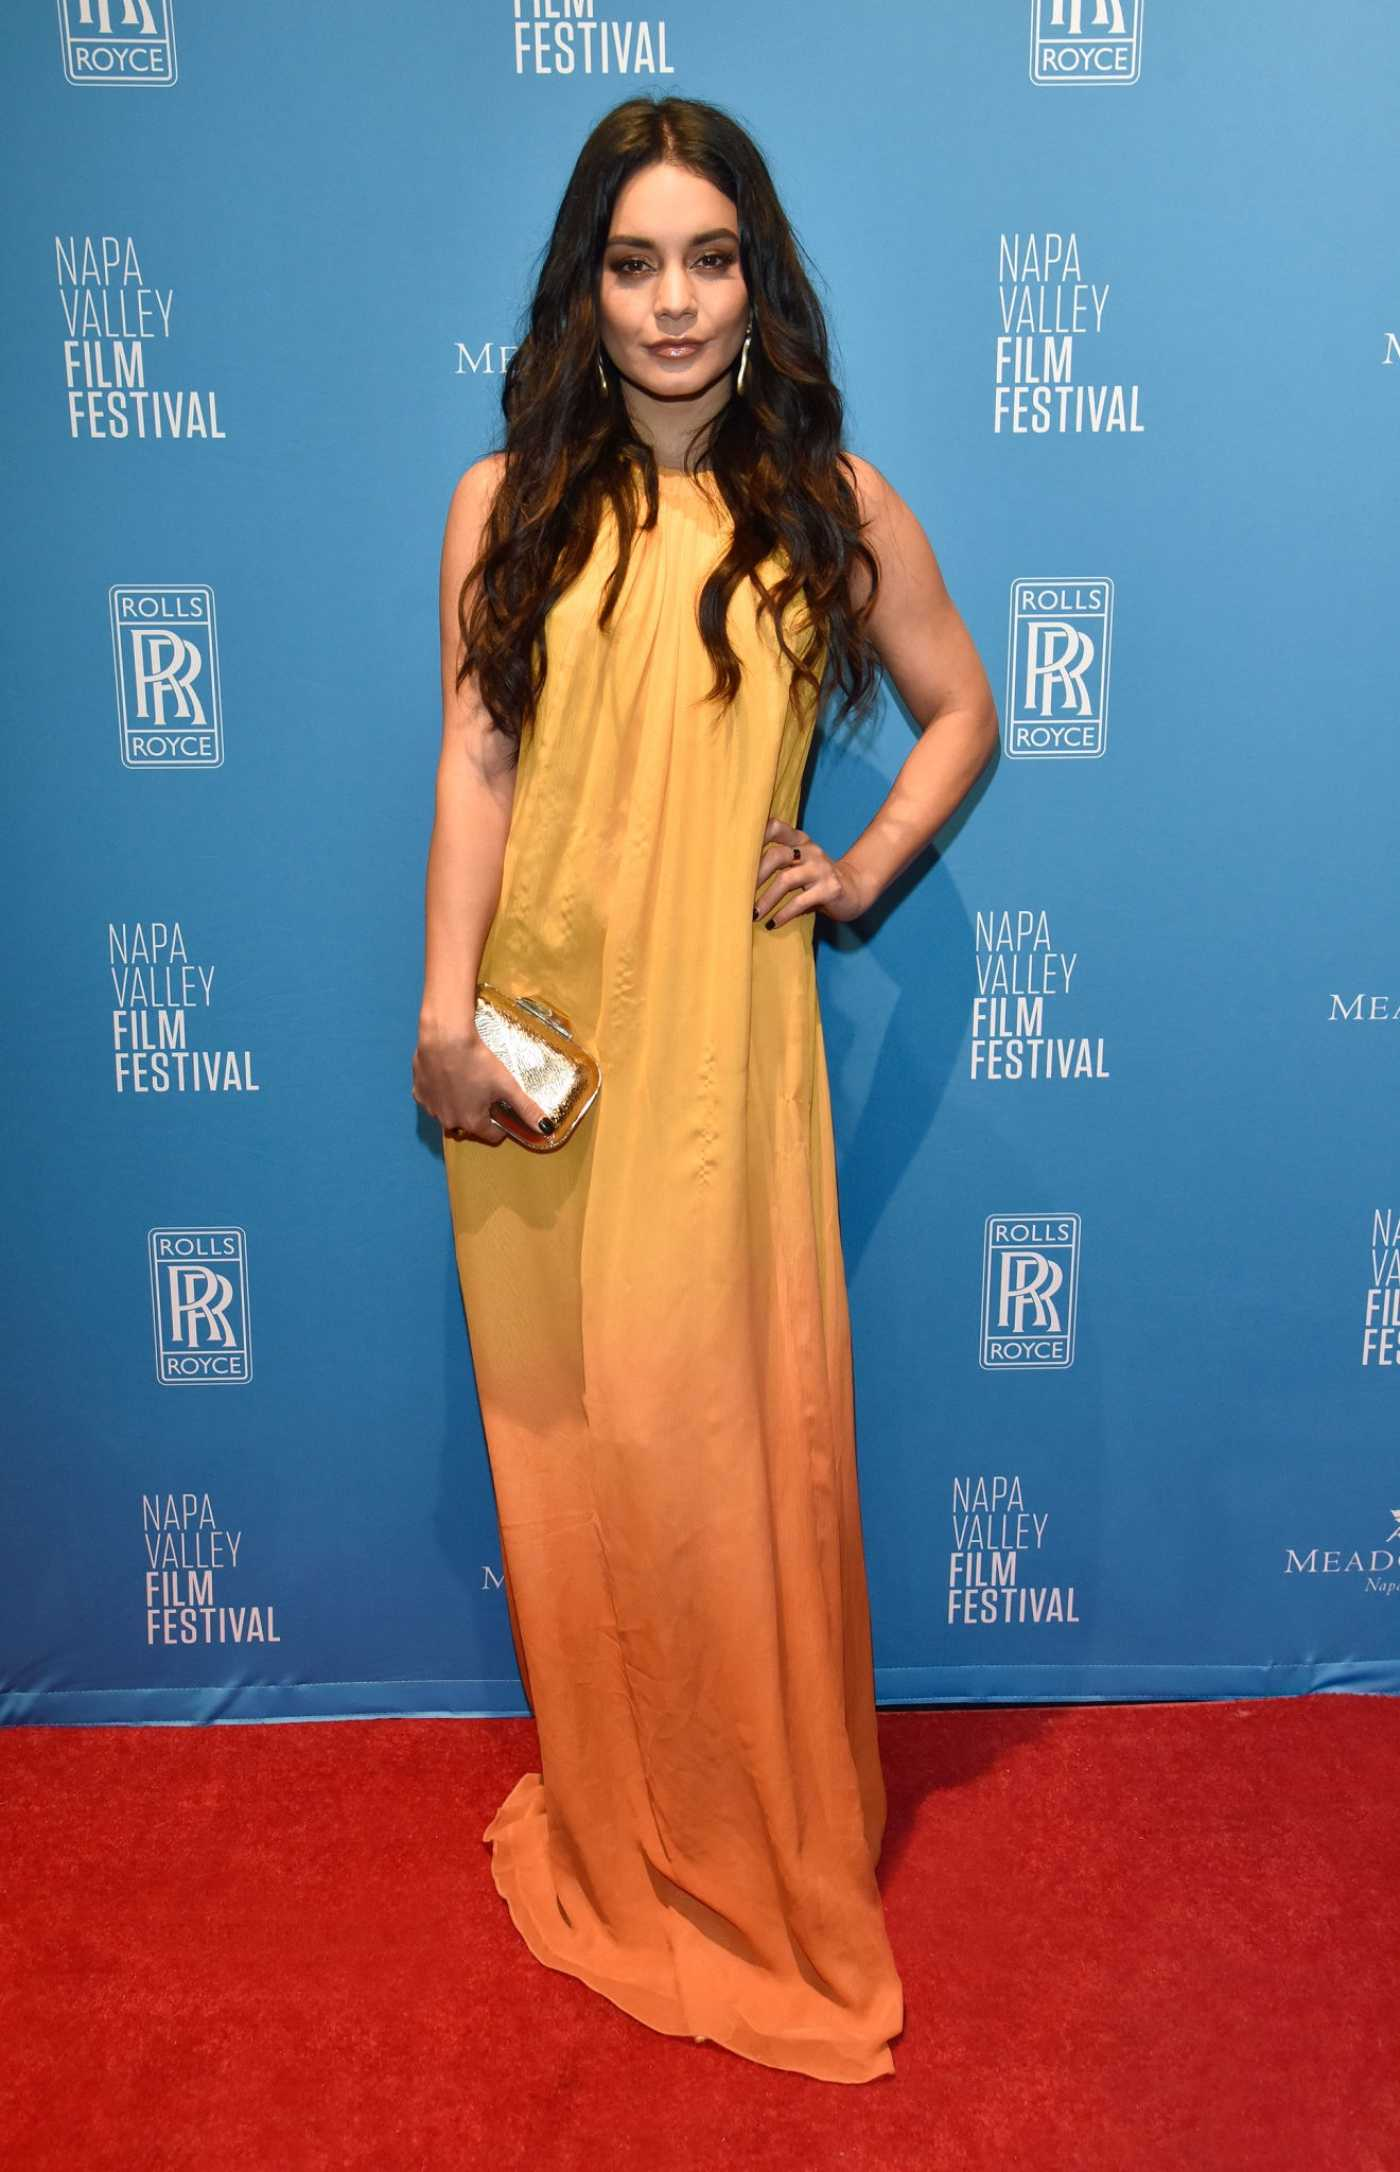 Vanessa Hudgens Attends the Rising Star Showcase During the 2019 Napa Valley Film Festival in Napa Valley 11/16/2019